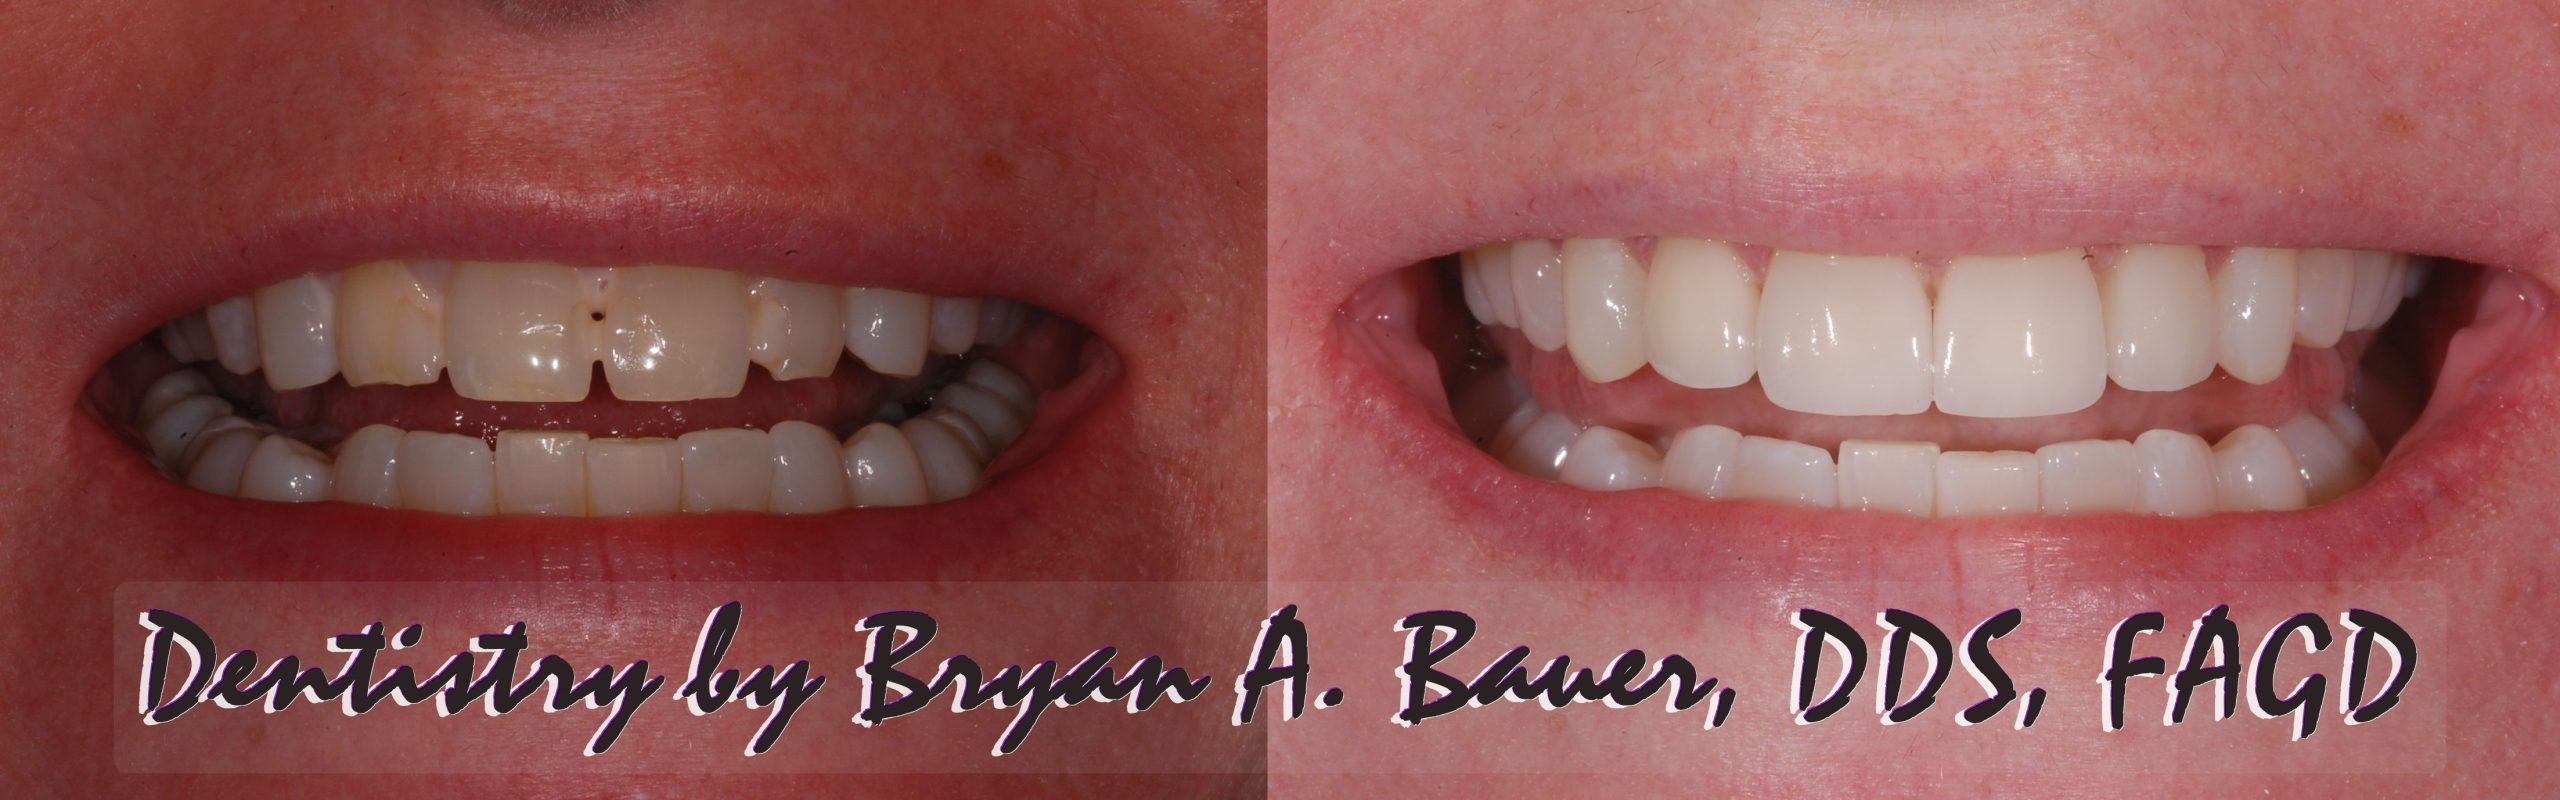 Before and after of 4 dental veneers and some bonding.